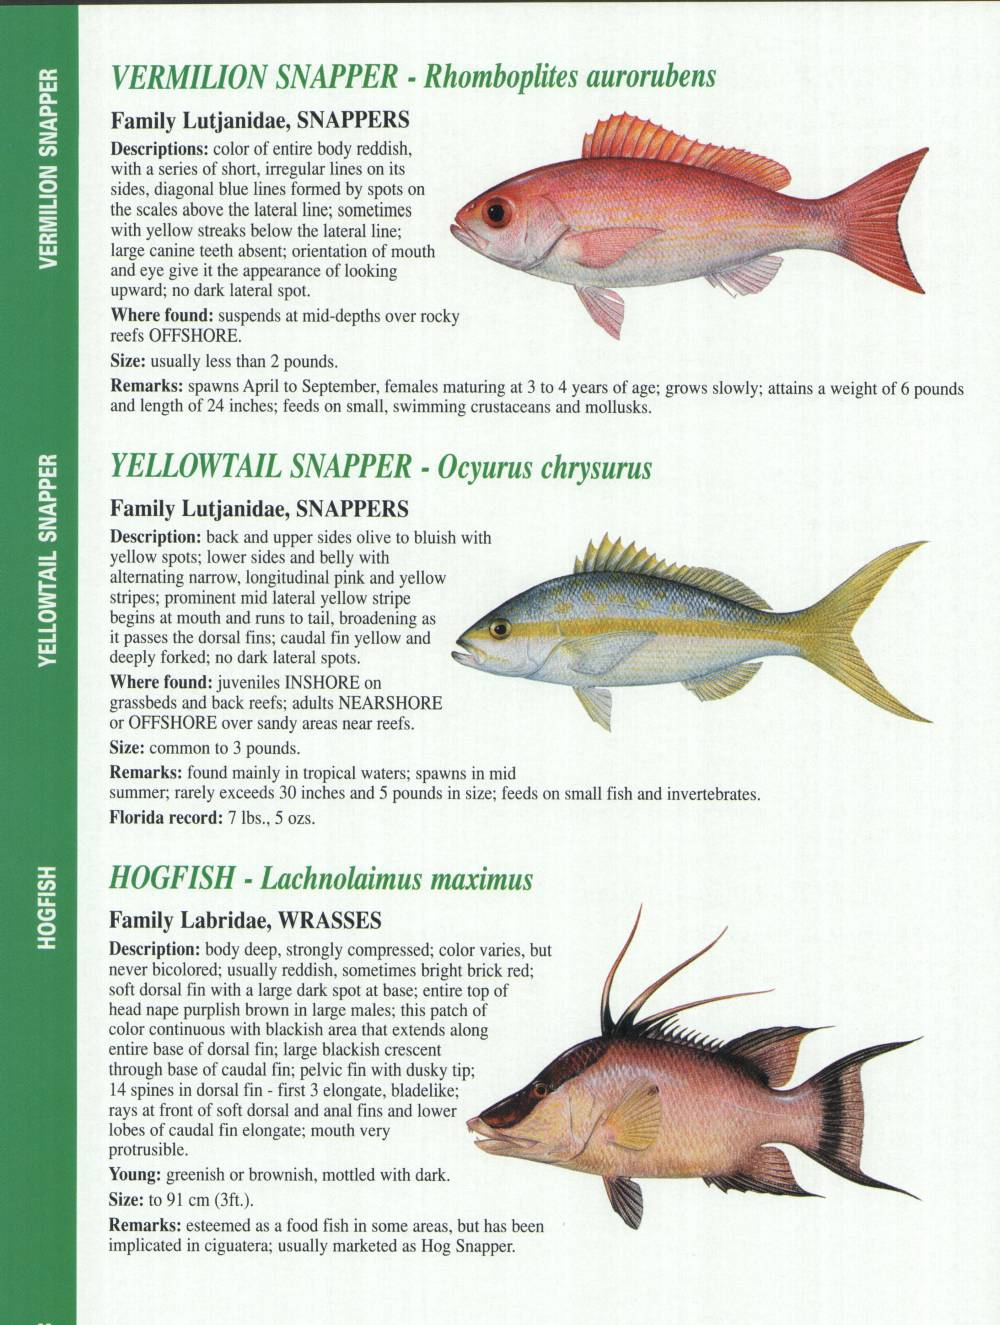 Crystal river fishing report florida gulf fish for The fish report